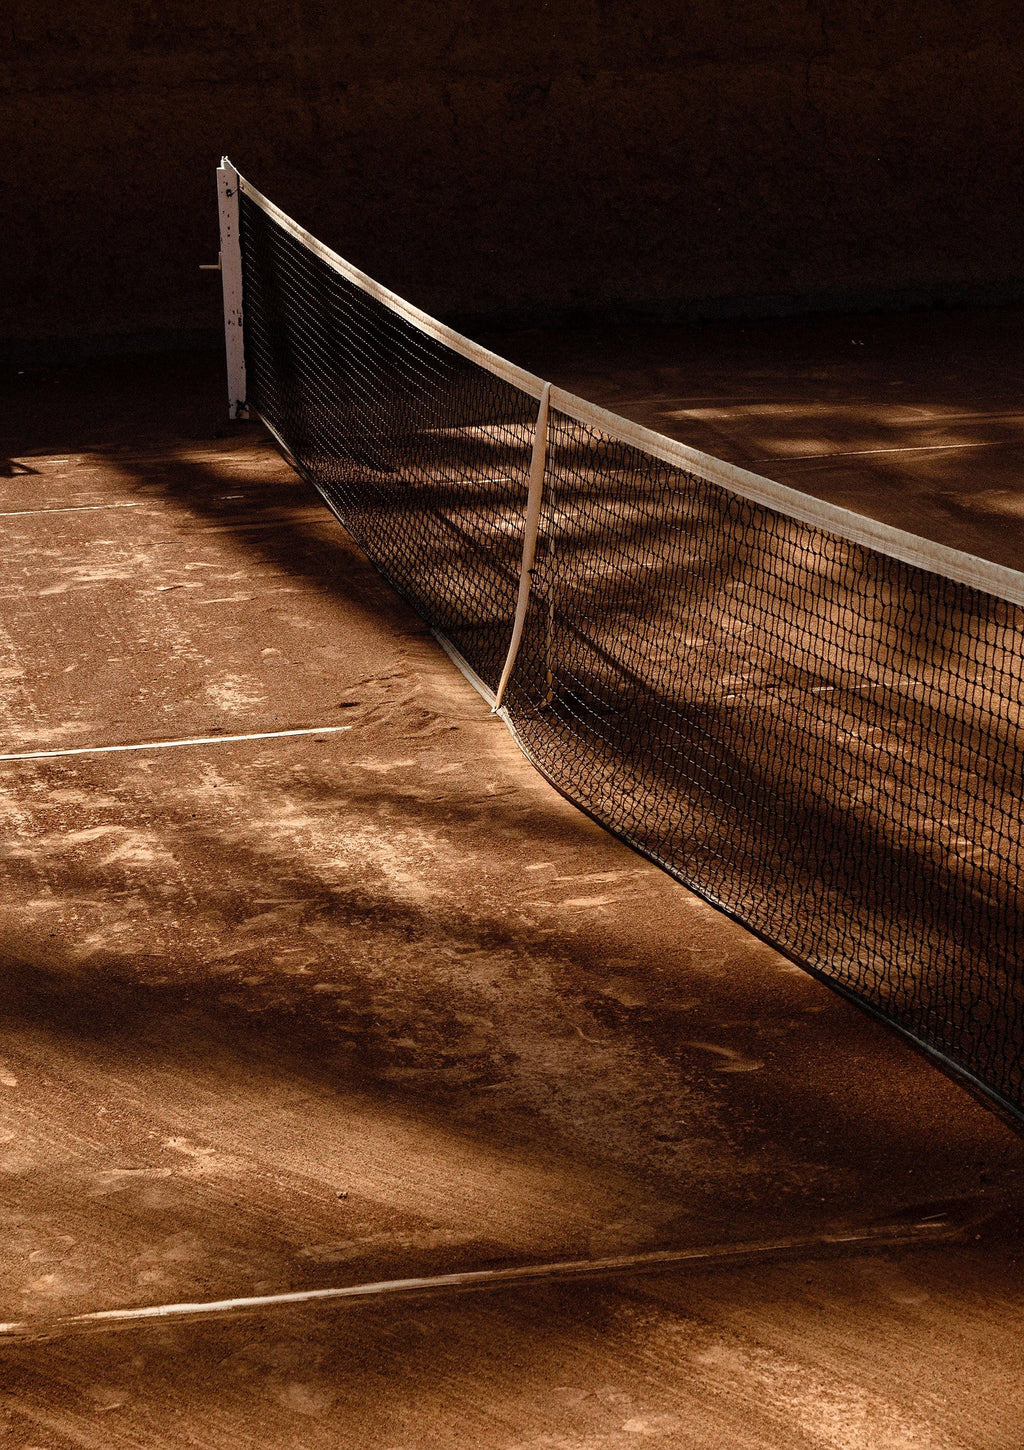 ANNA PIHAN MARRAKECH TENNIS SIDE LINES FINE ART PRINT